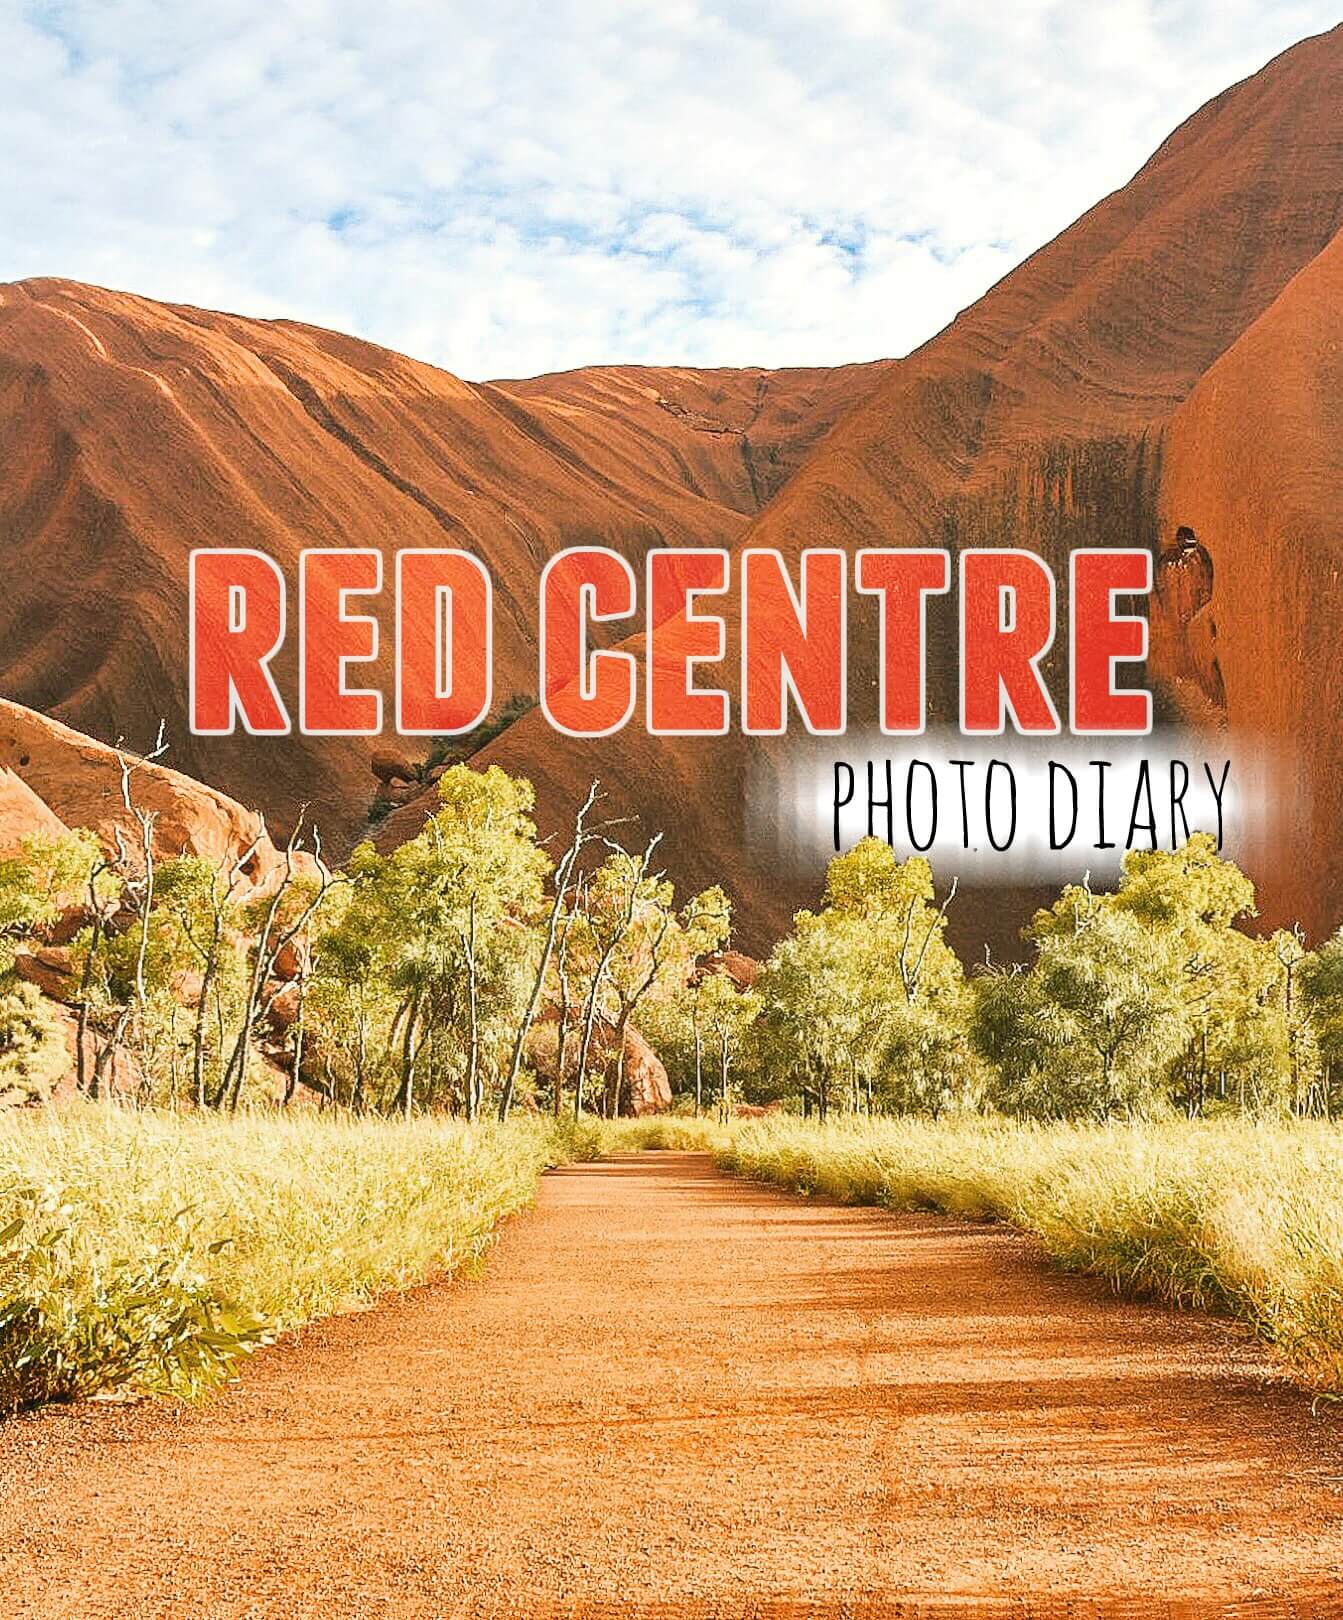 RED CENTRE PHOTO DIARY